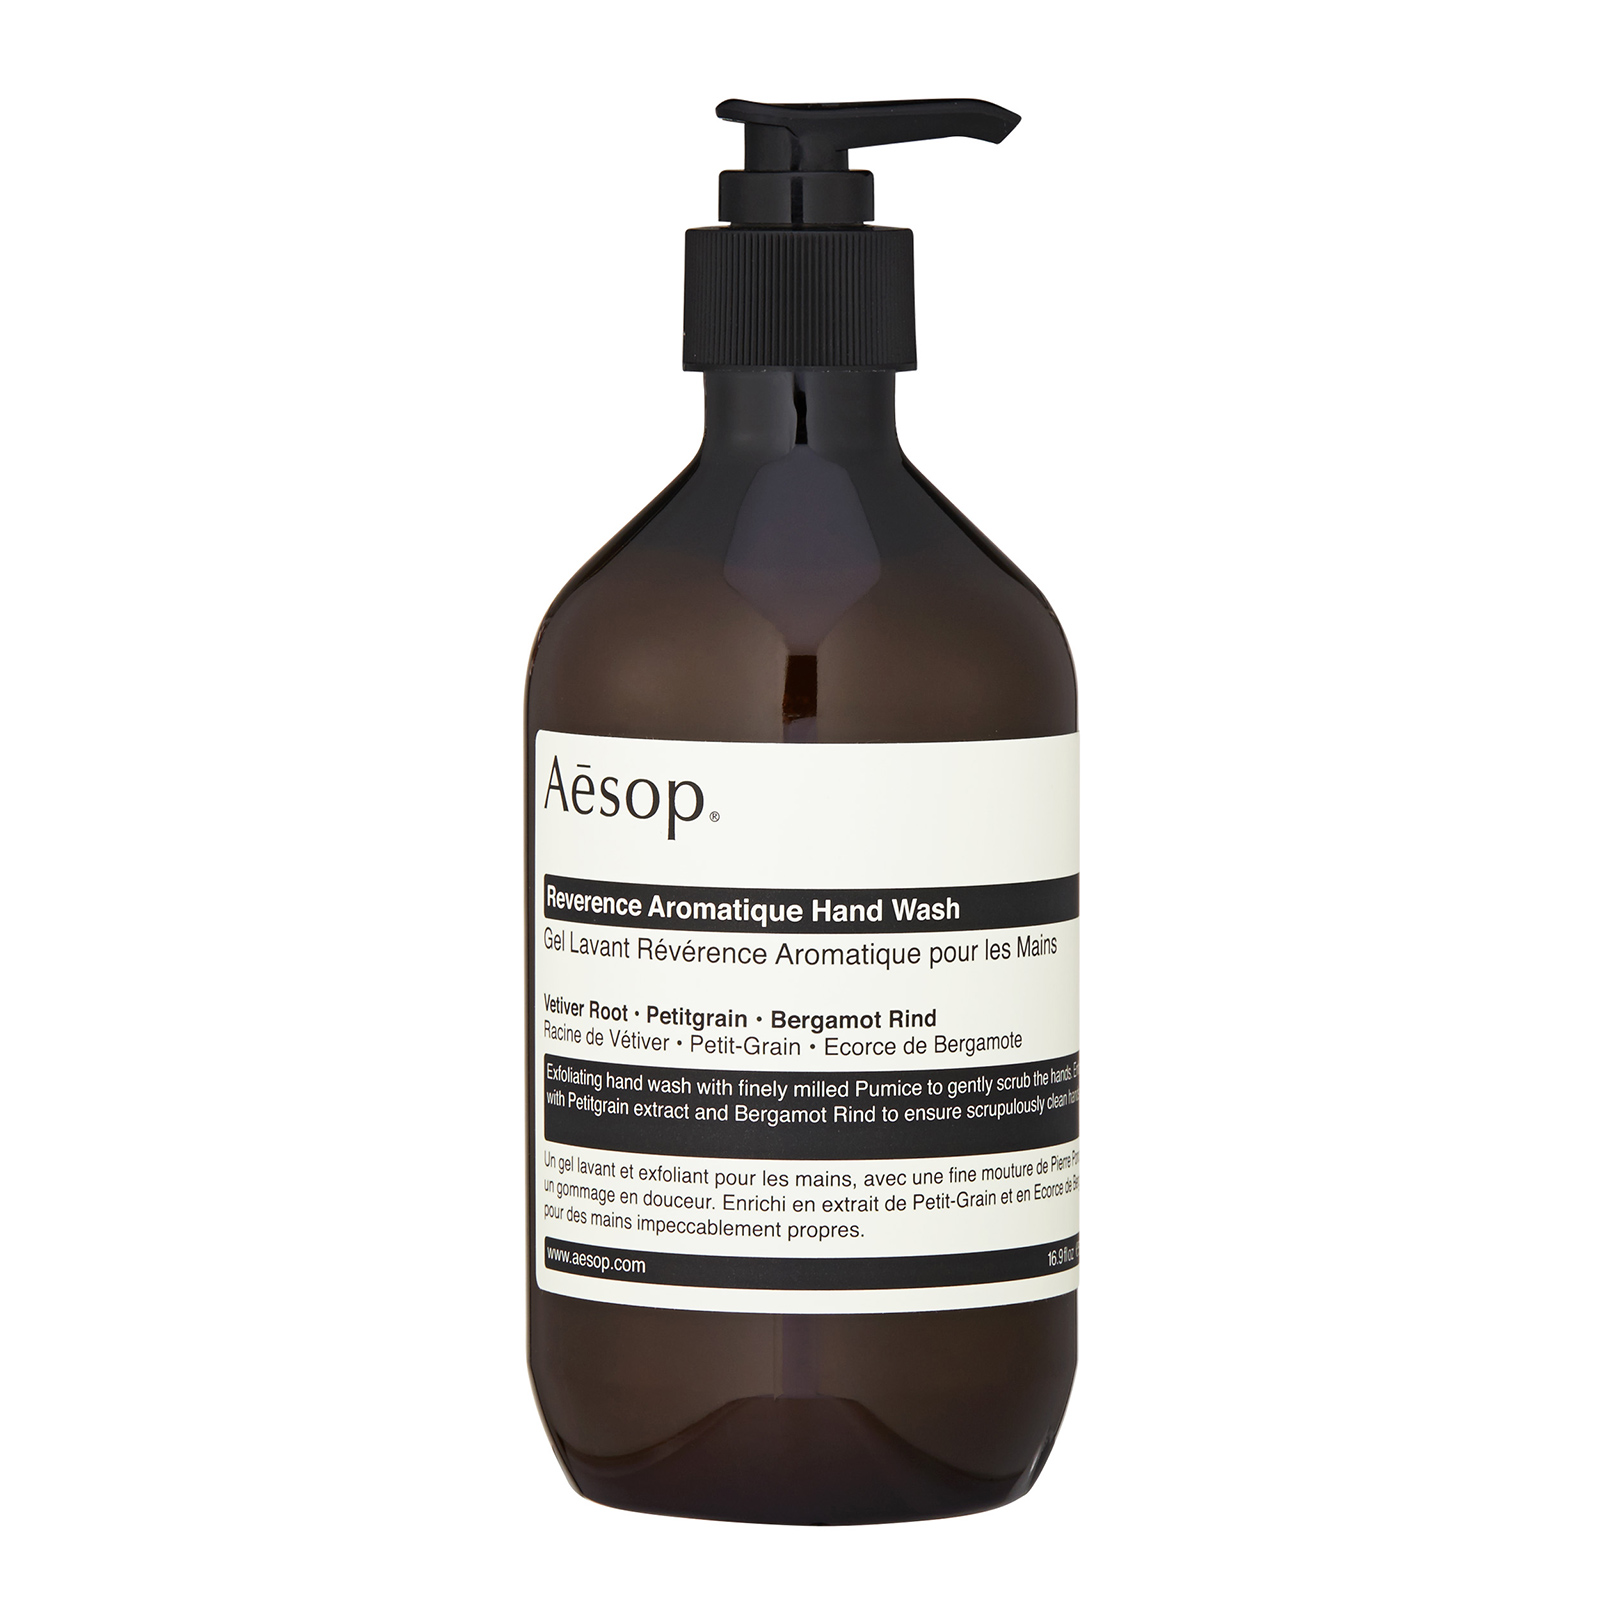 Aesop Reverence Aromatique Hand Wash has the following features:An exfoliating hand wash with finely milled Pumice to gently scrub hard working hands. Enhanced with Petitgrain extract and Bergamot Rind to purify skin and ensure a clean and clear finish. Providing an amazing cleansing and intense hydrating experience.